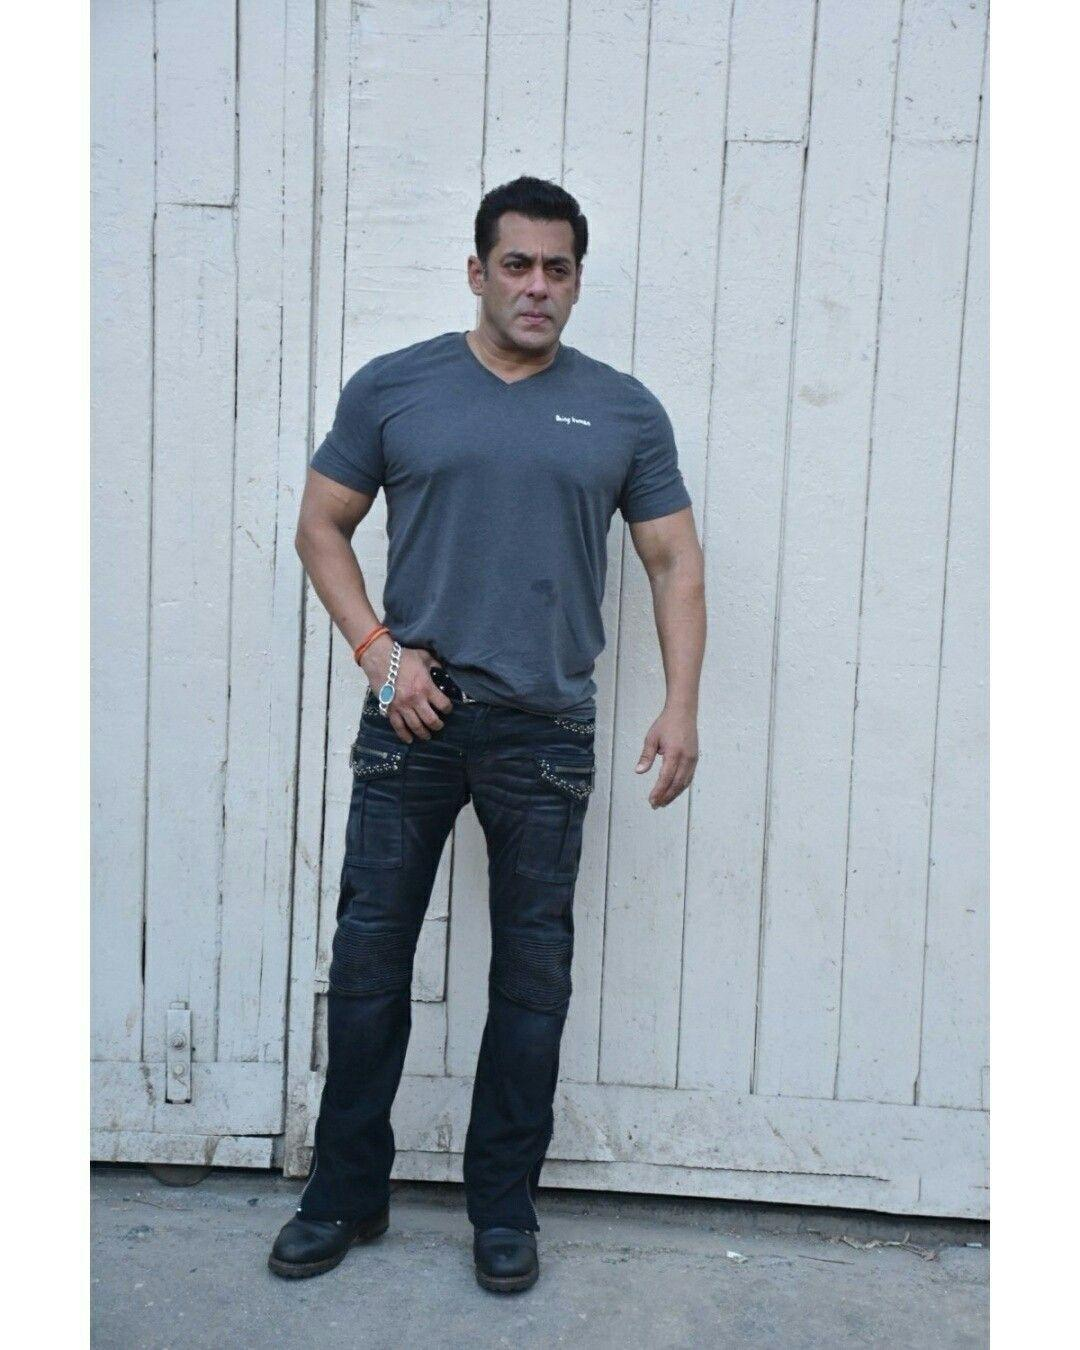 Salman Khan during the promotion of Bharat